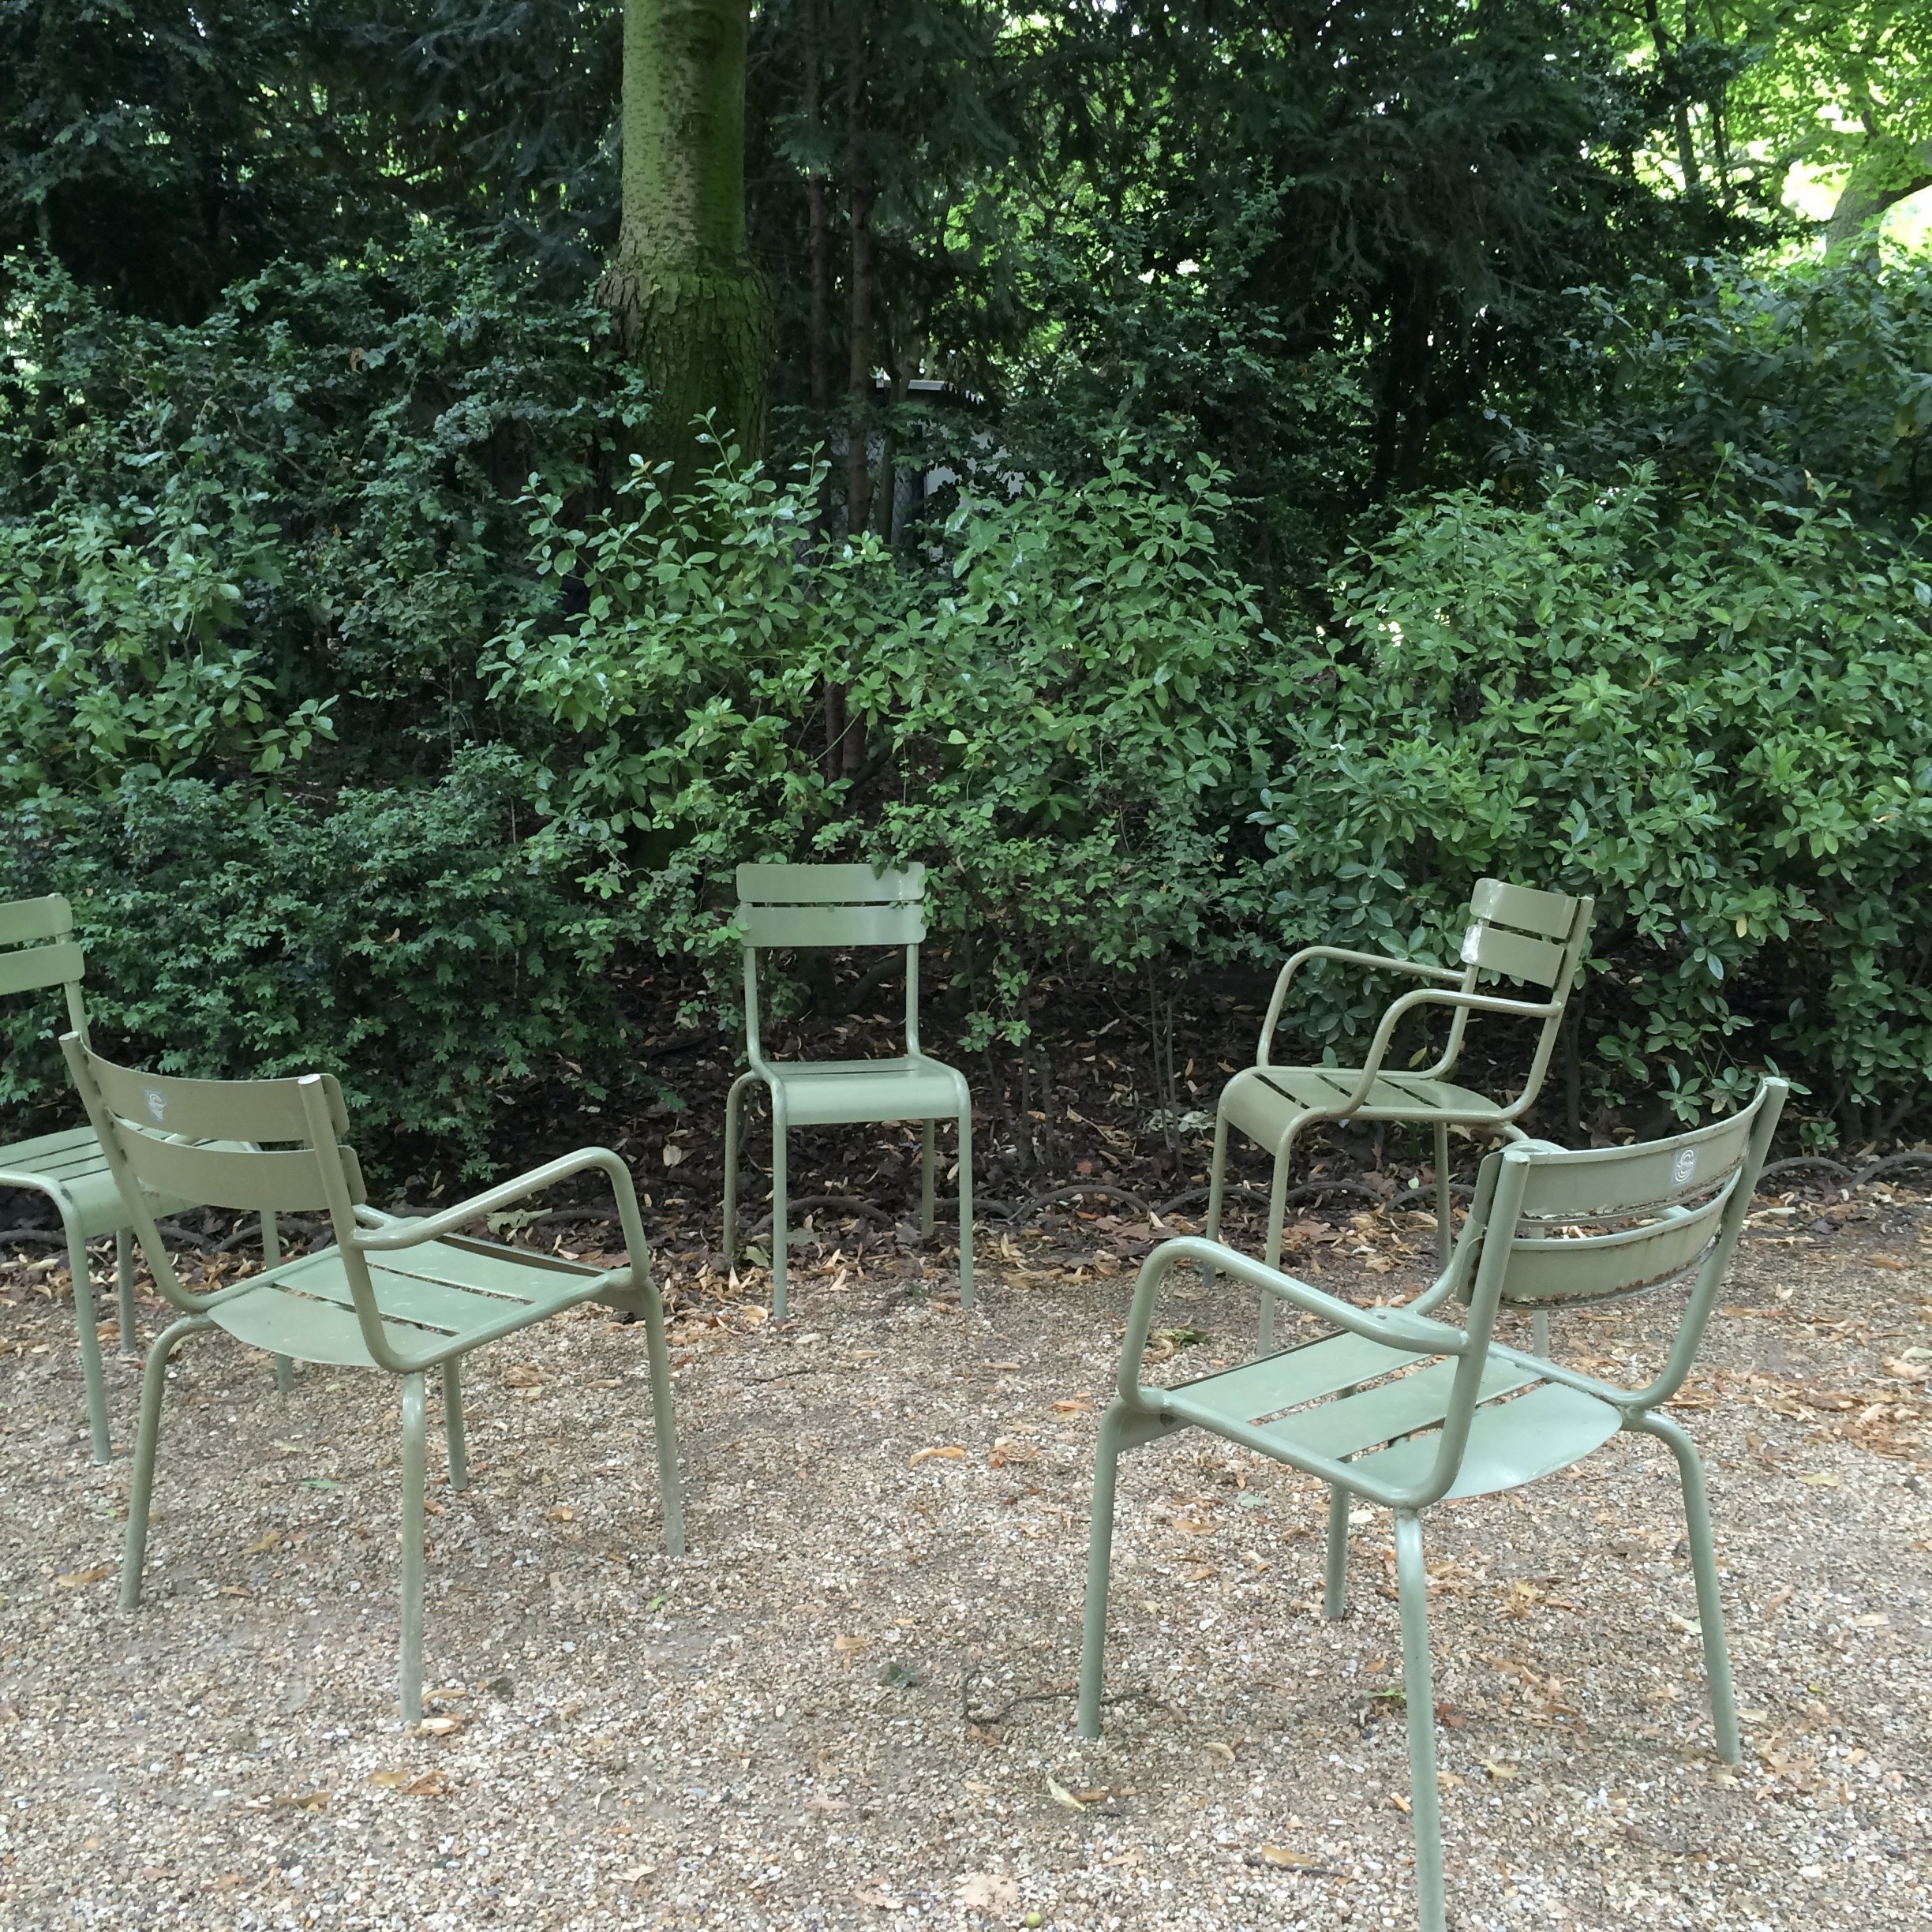 Green Chairs in the Luxembourg Gardens